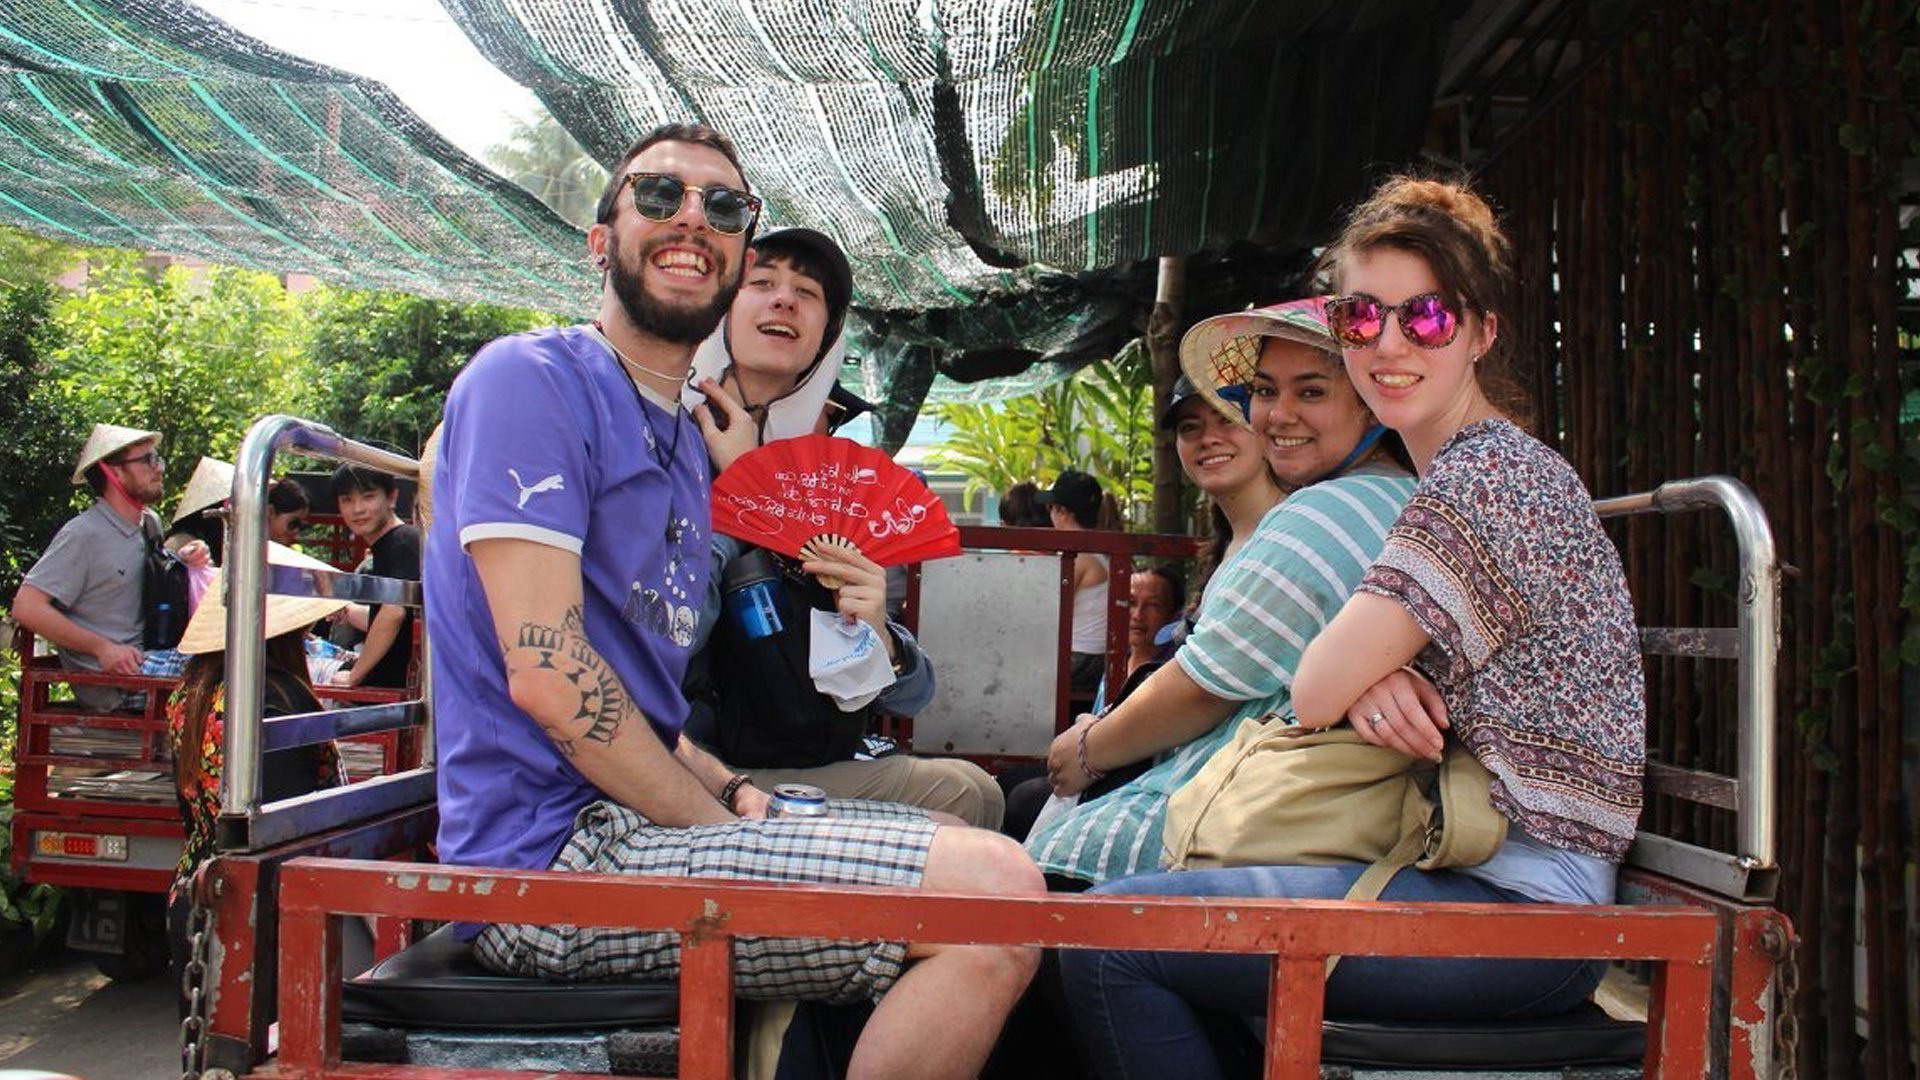 Julia (left) and students Cesia, Maria, Aren and Kyle experience a tuk-tuk ride in the islands of the Mekong Delta in Vietnam.